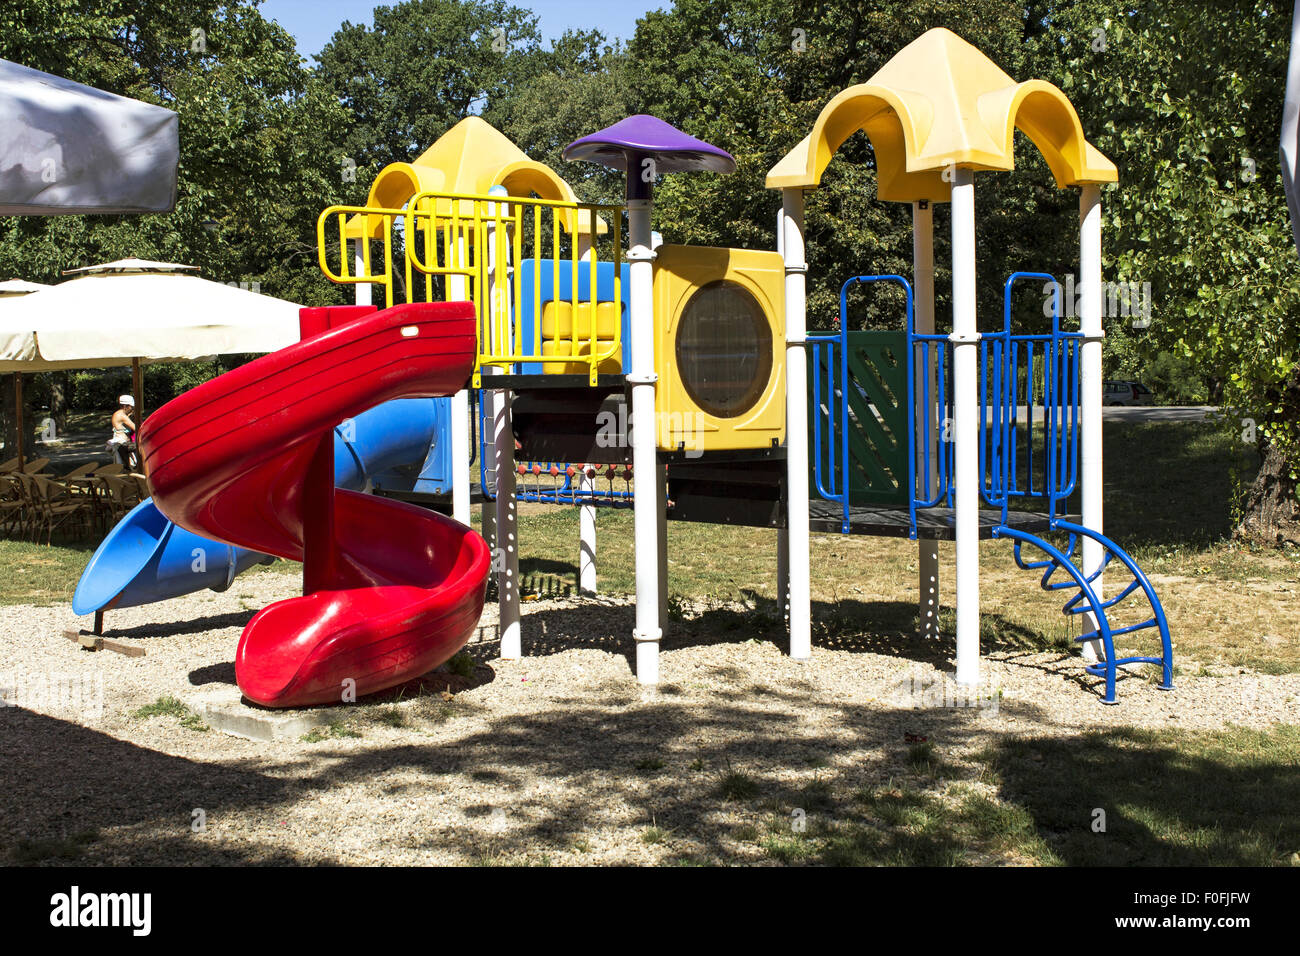 Klettergerüst Jungle : Jungle gym im park stockfoto bild: 86395677 alamy